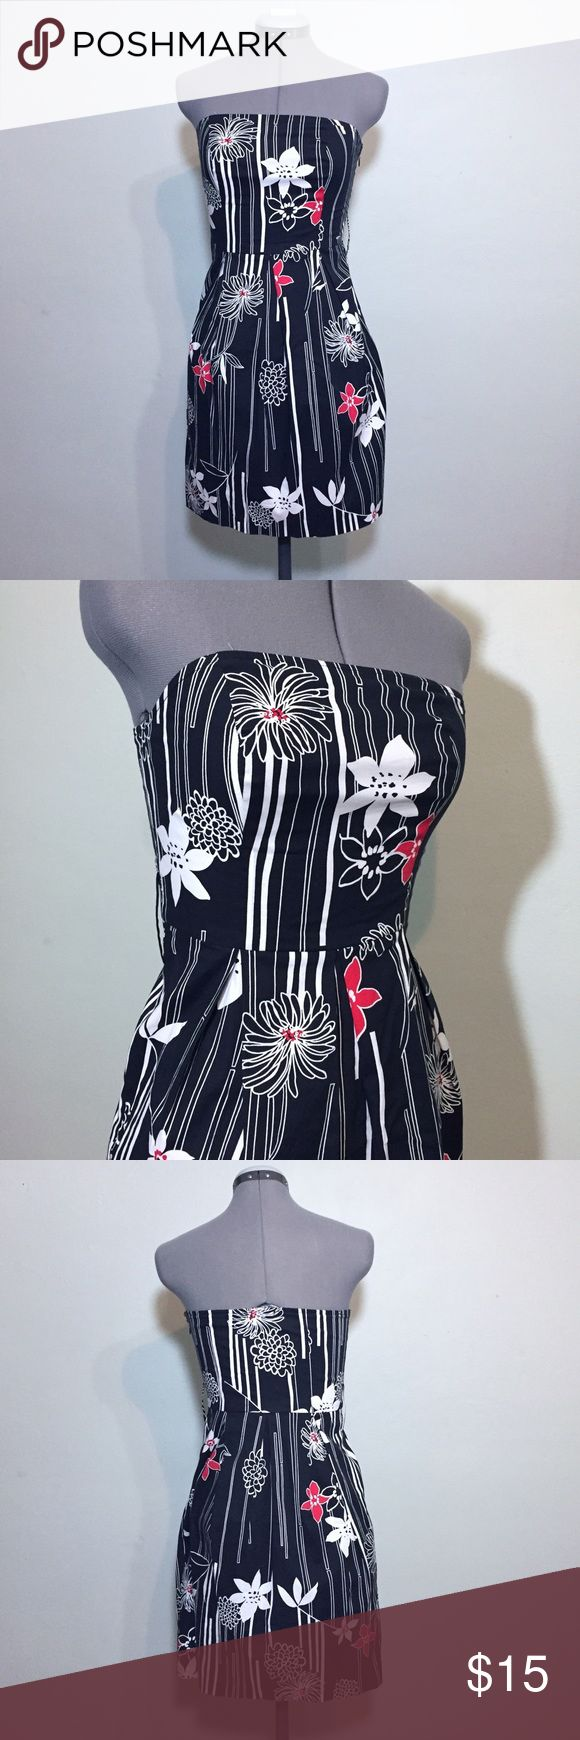 """Eyeshadow Black & White Strapless Summer Dress Adorable Eyeshadow Black & White with Splashes of Red Strapless Summer Dress. In great condition. Has belt loops for a wide belt, not included. Size Juniors 3 measures flat: 15-17"""" across chest, 13"""" across at high waist, 21"""" across hips, 28"""" long. 97% cotton, 3% spandex. Fully Limed- 100% cotton. 521/25/053117 Eyeshadow Dresses Strapless"""